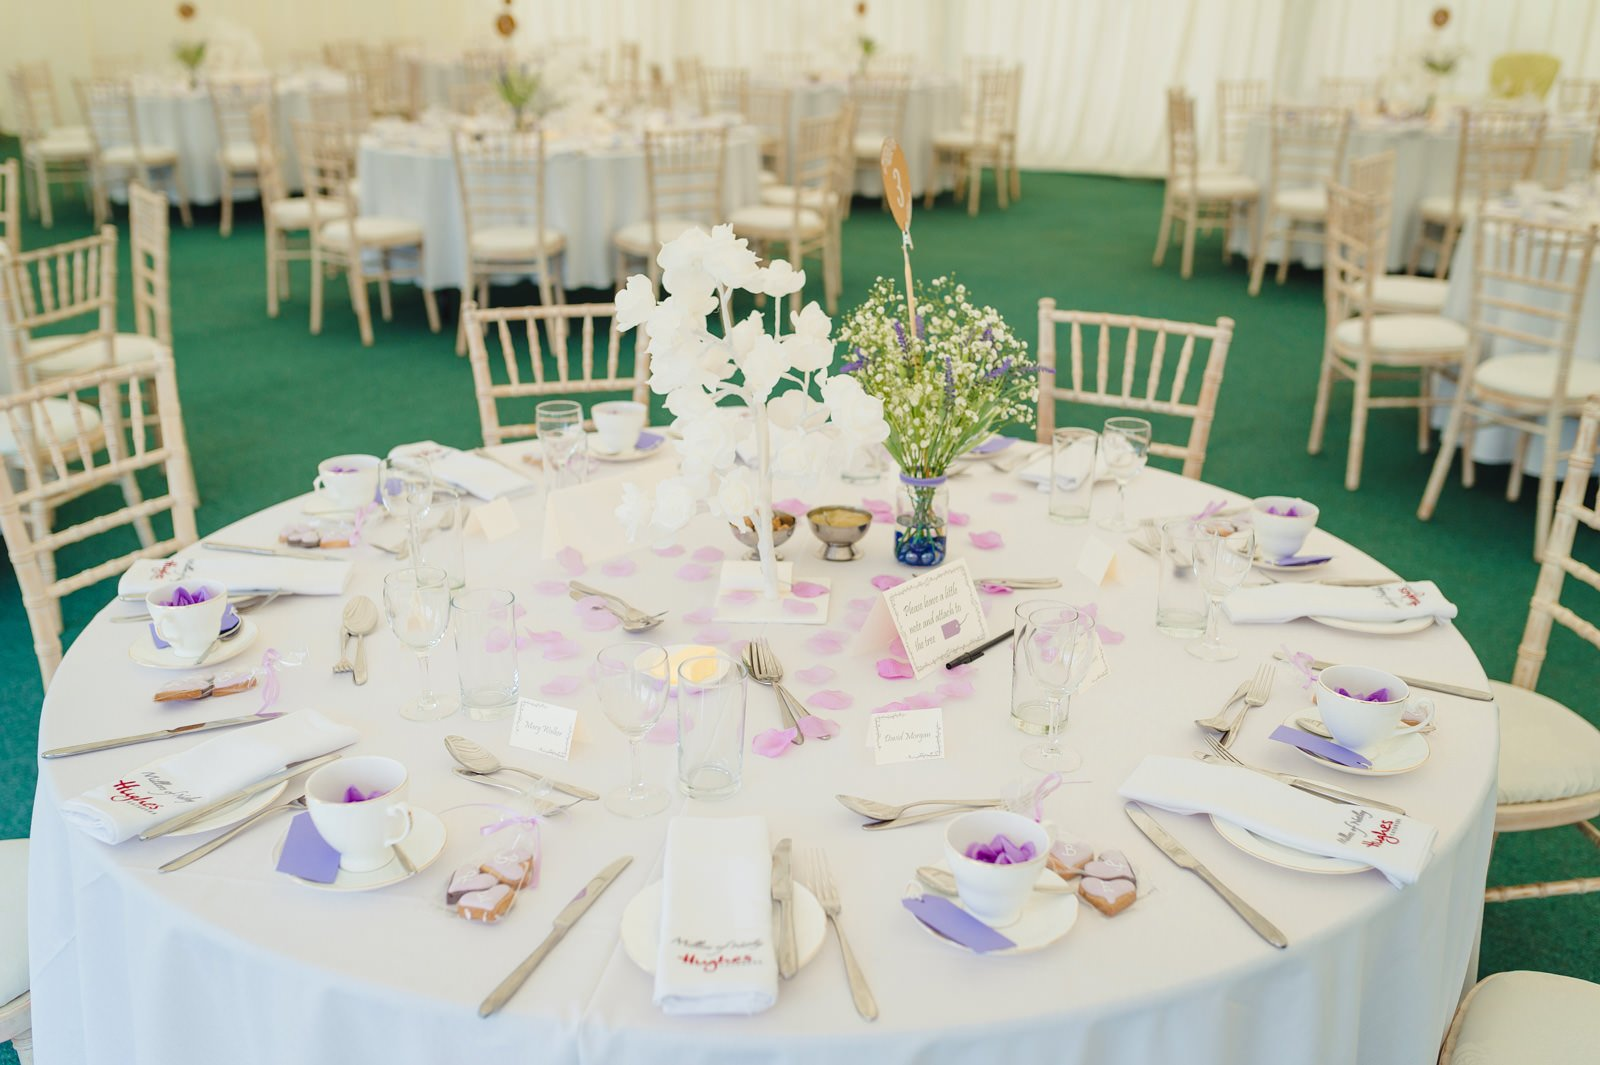 millers of netley wedding 55 - Millers Of Netley wedding, Dorrington, Shrewsbury | Emma + Ben